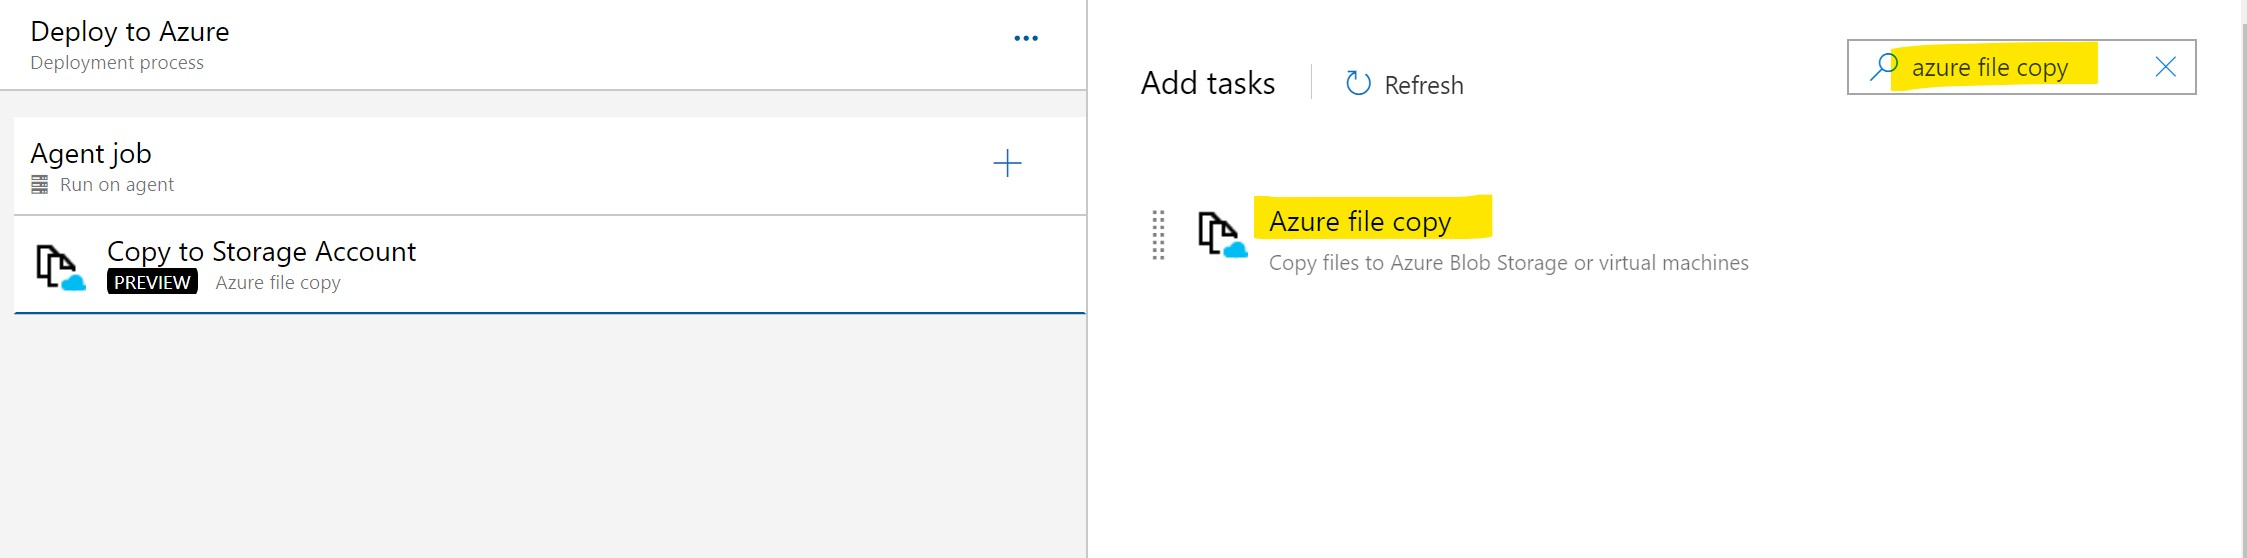 Create an Azure file copy task